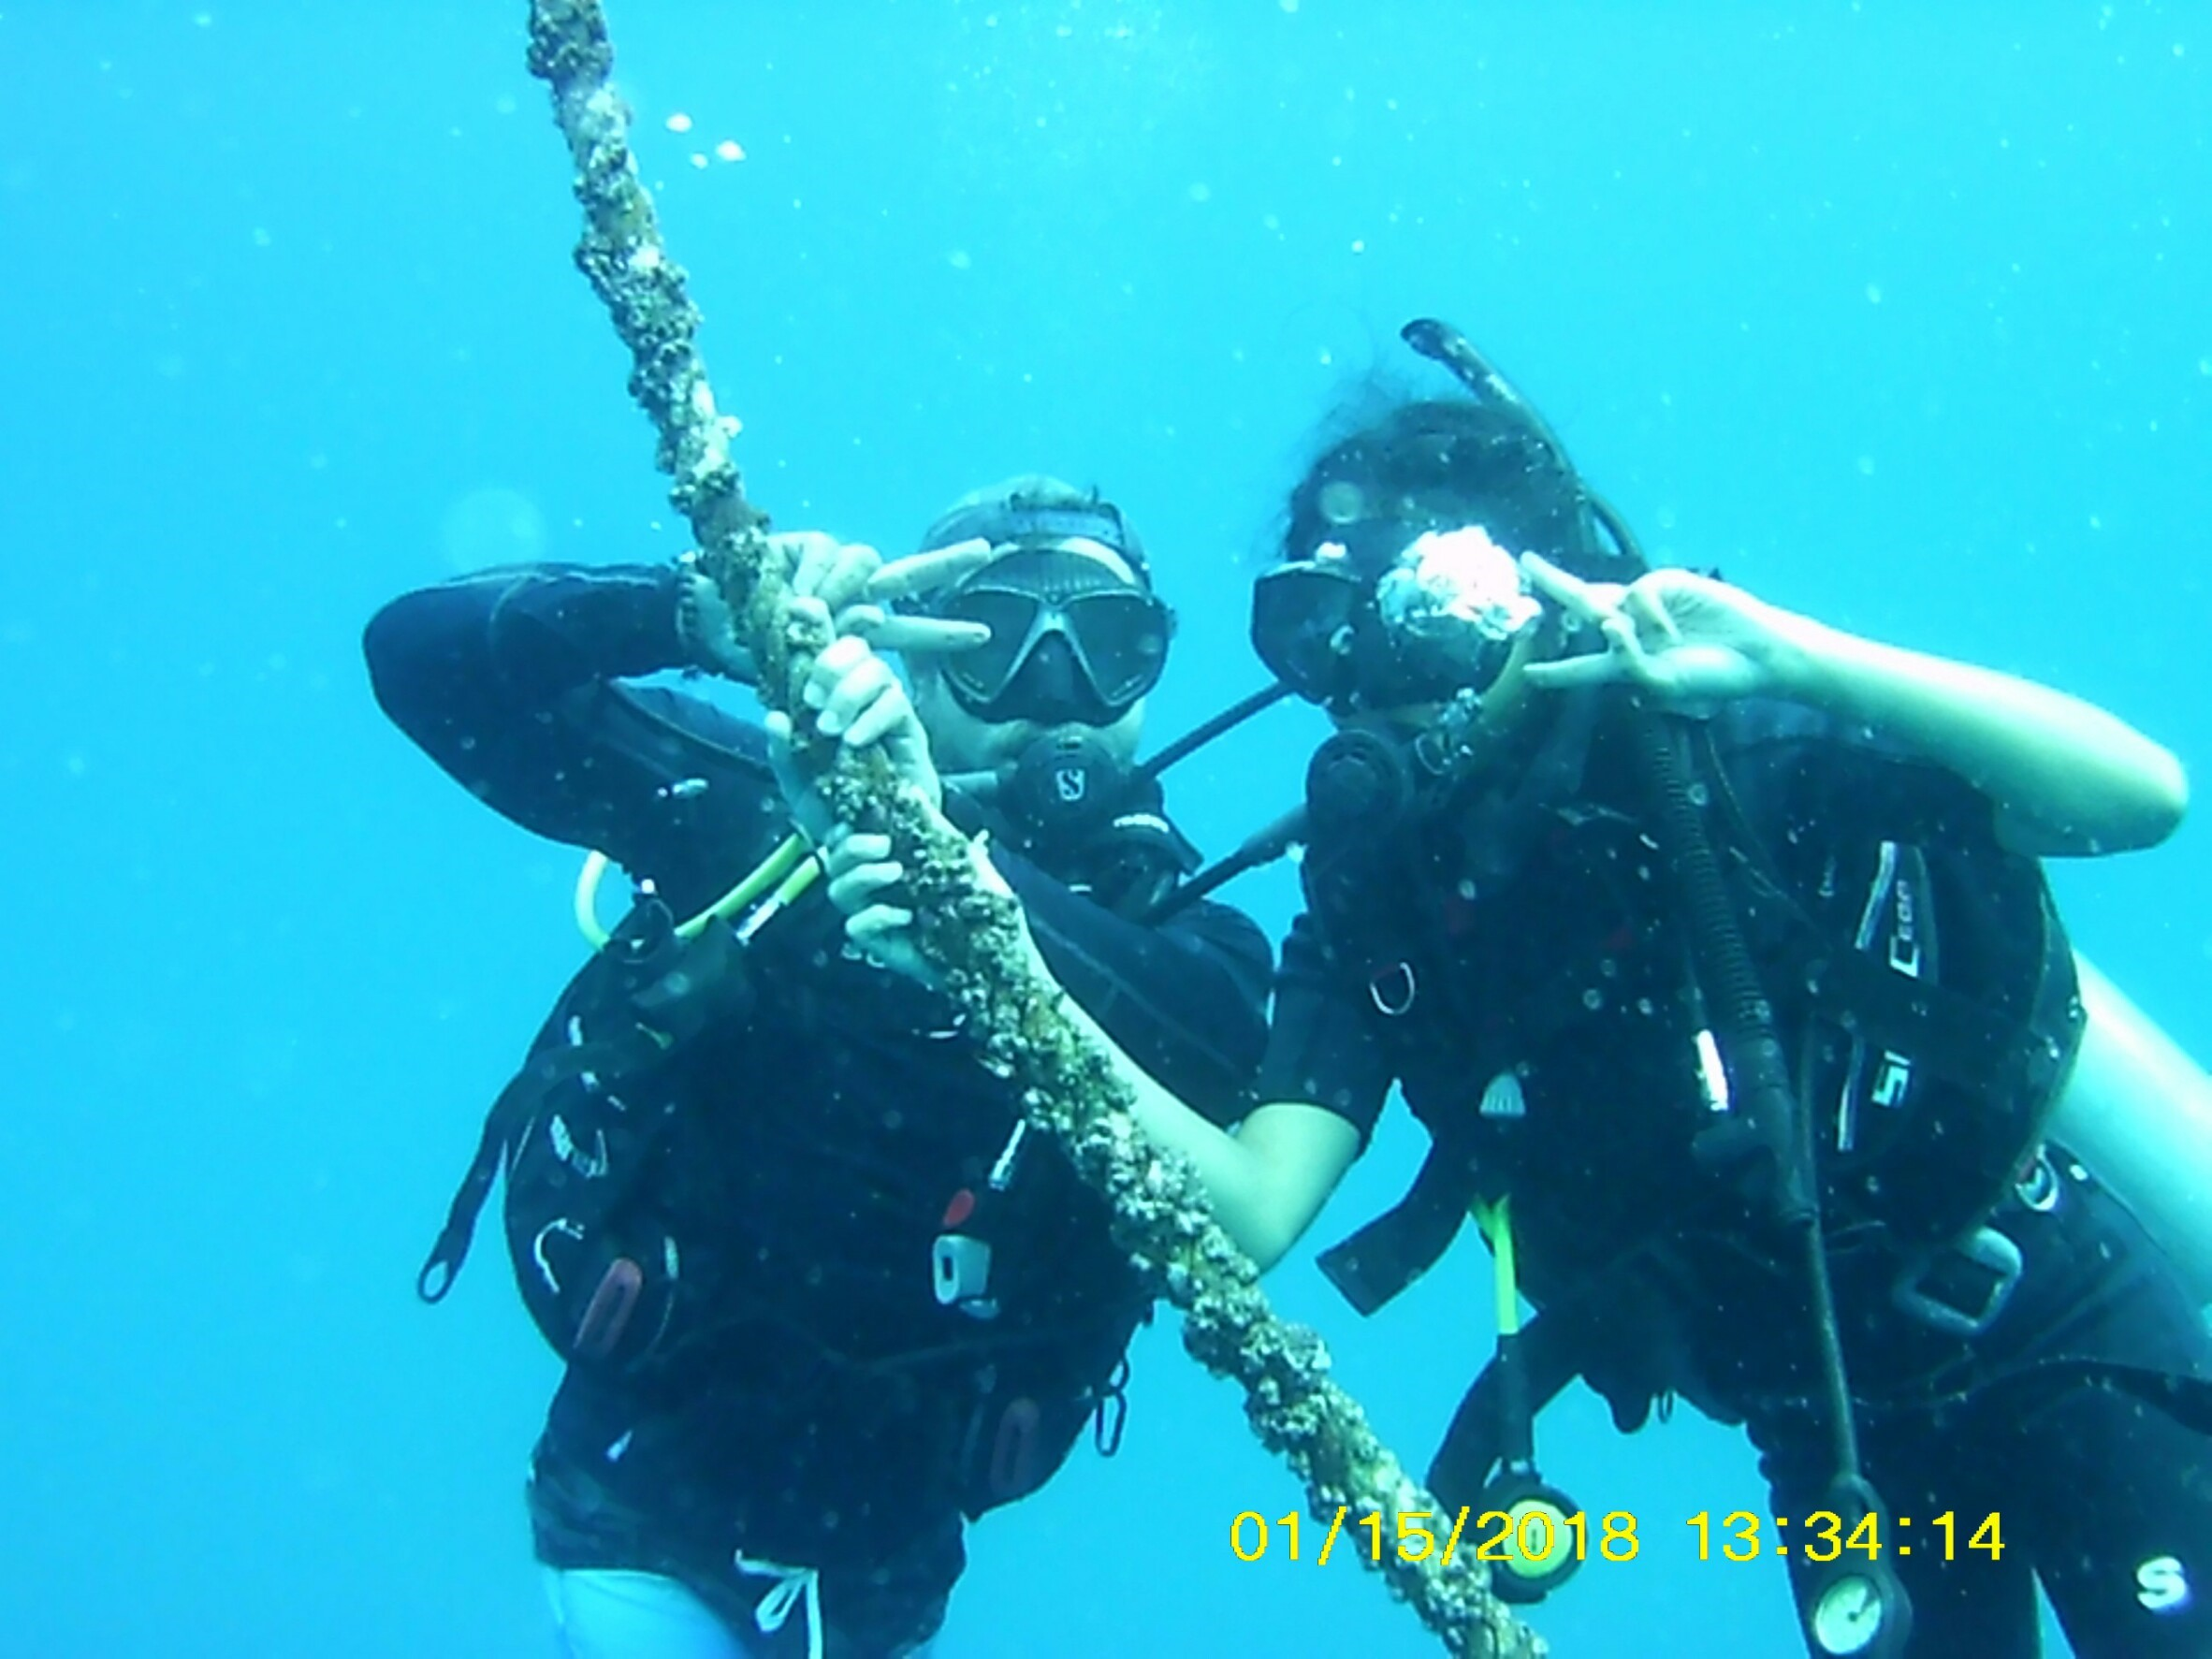 we have fun With diving. But we have wrong date in the Camera.